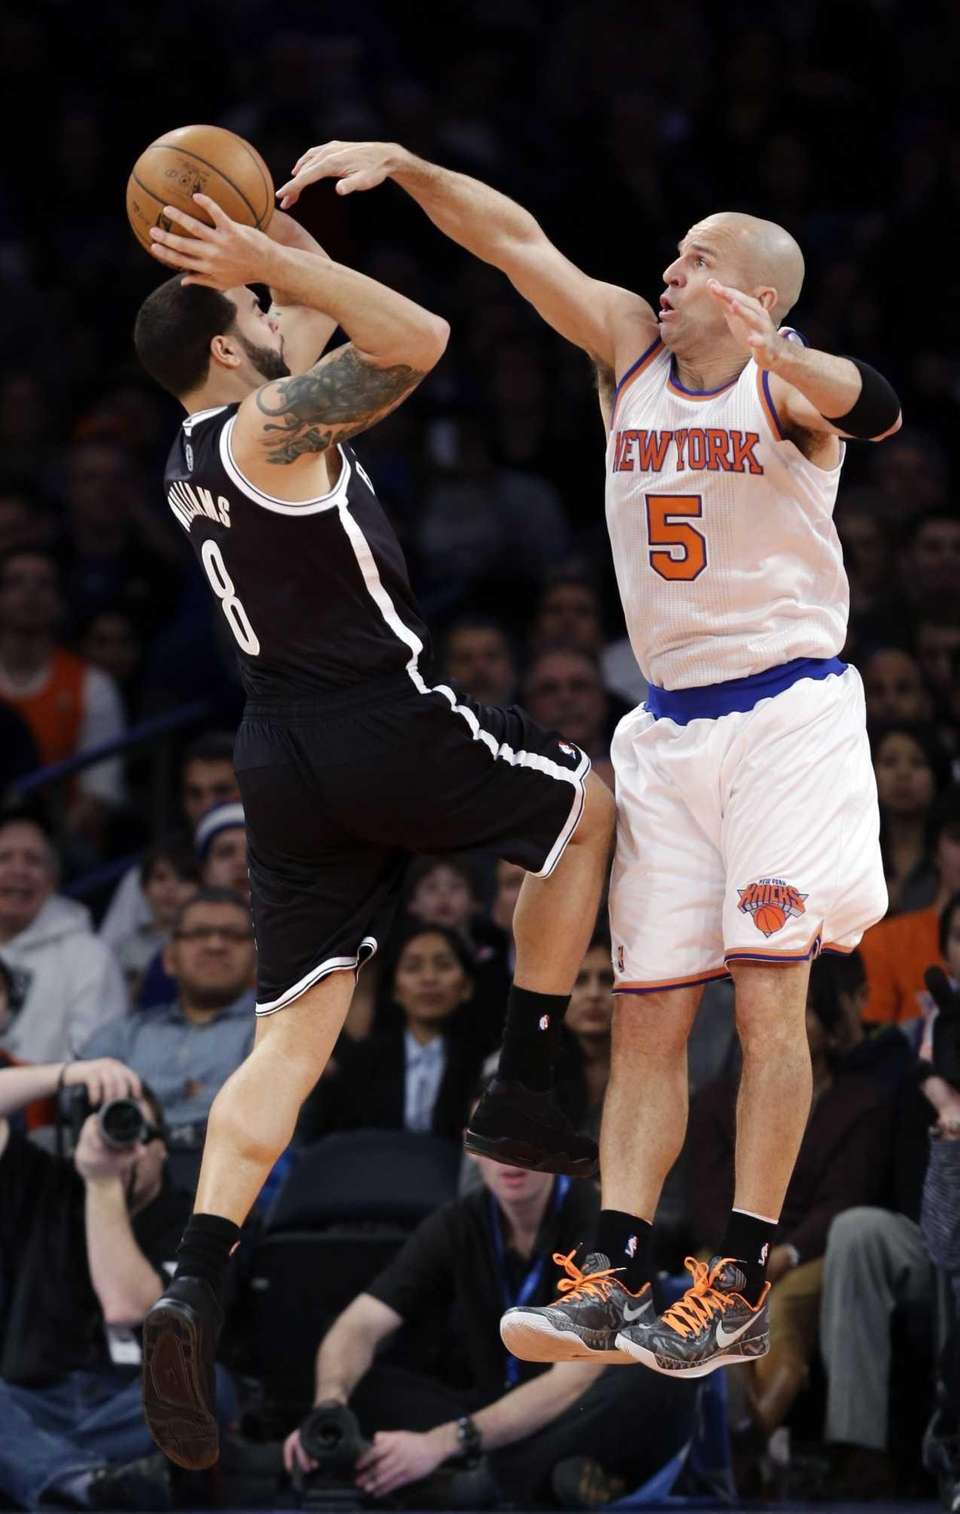 Brooklyn Nets guard Deron Williams tries to shoot